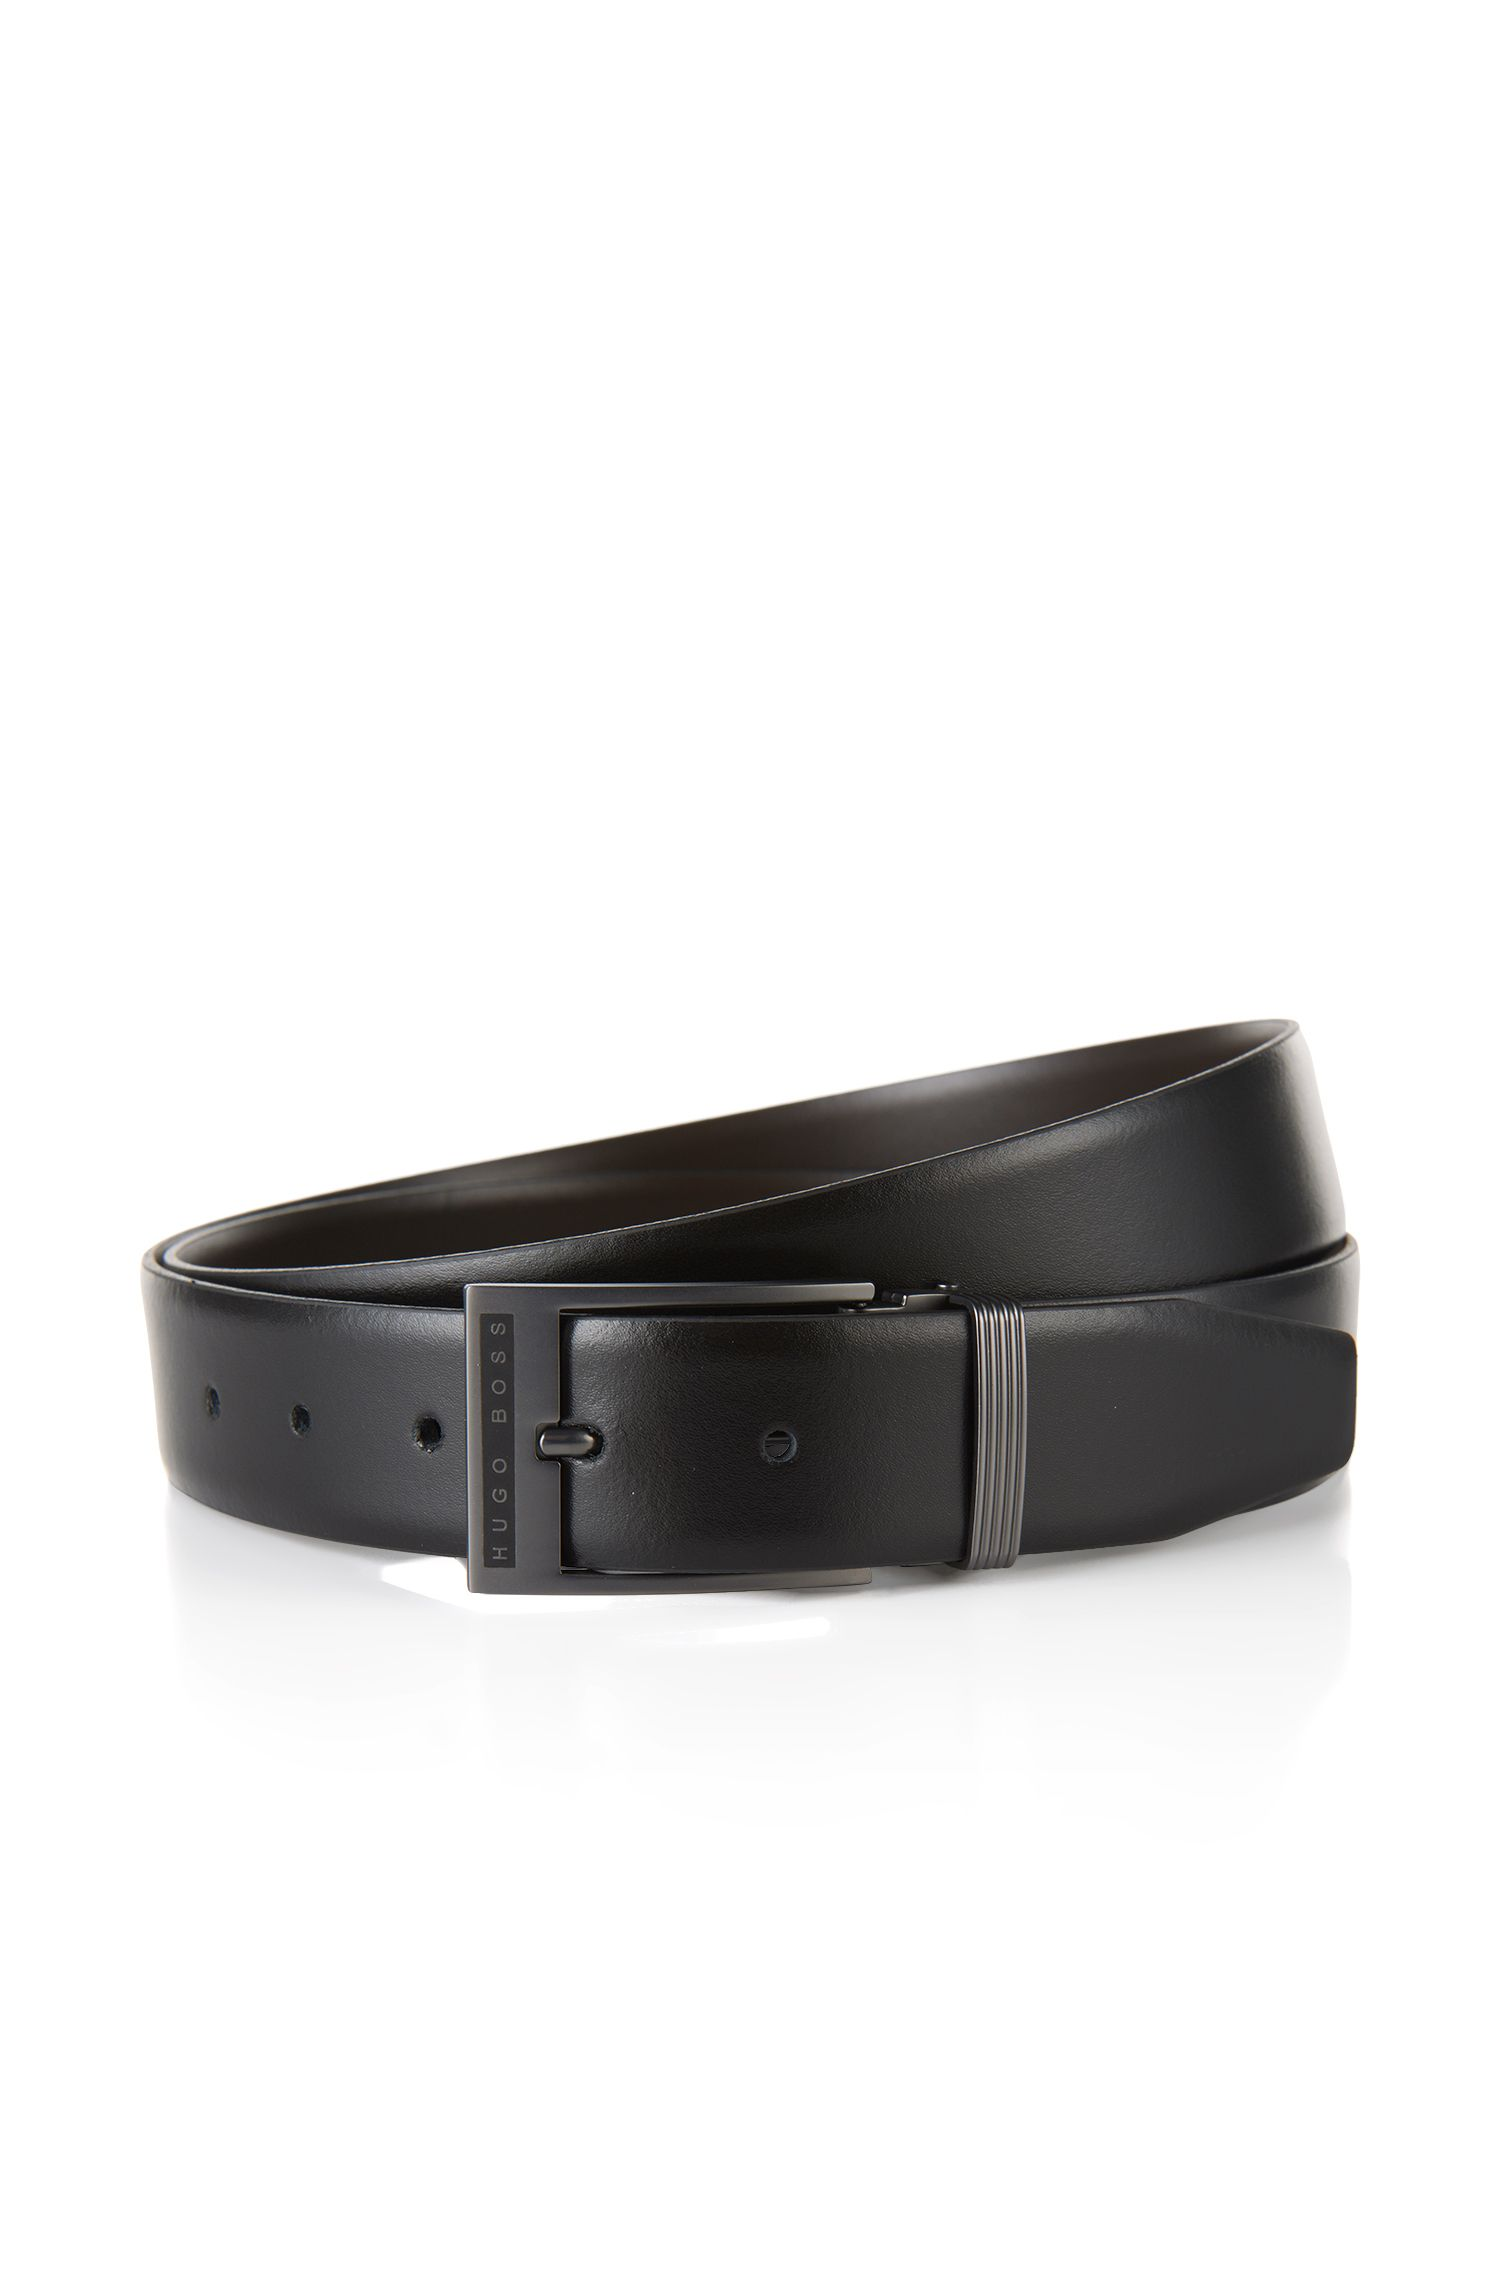 logo buckle belt - Black N?21